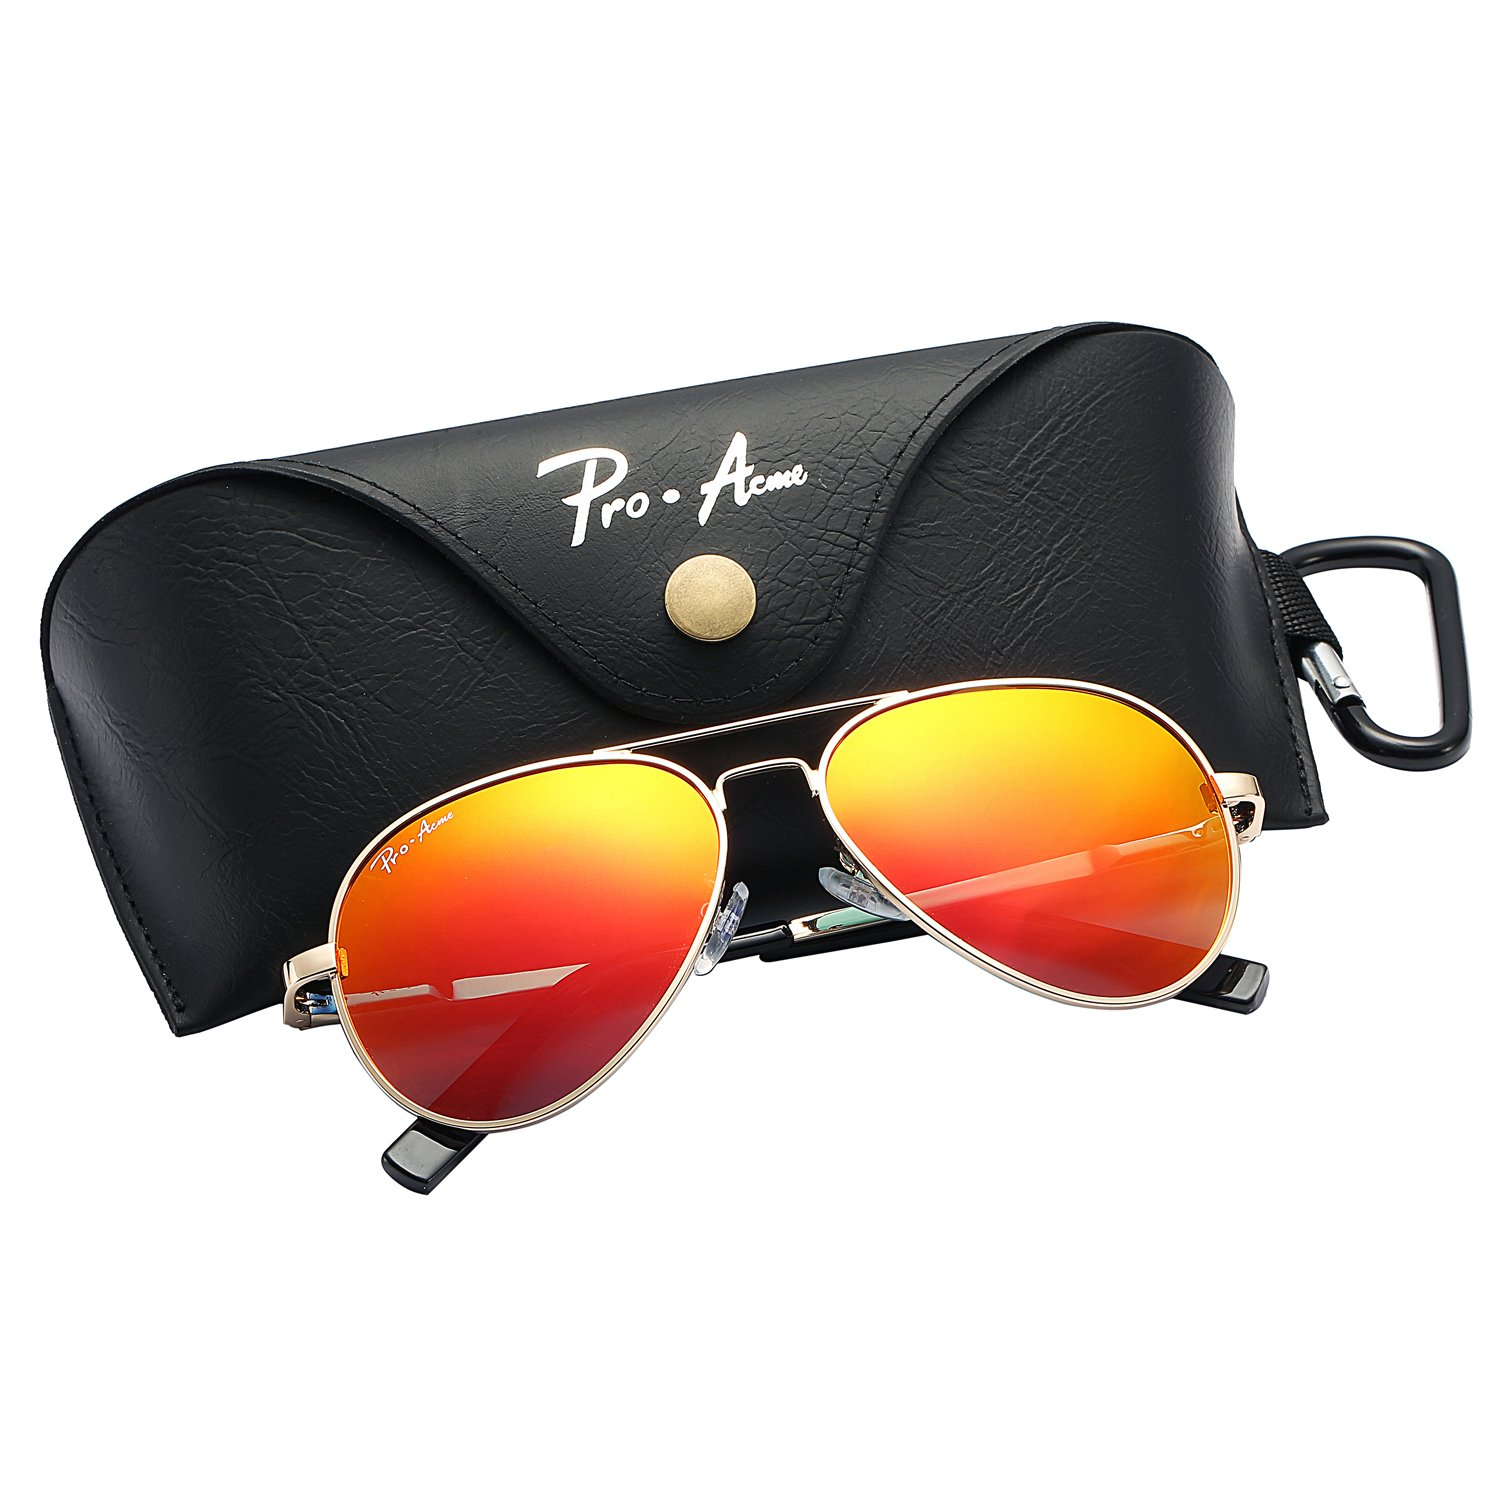 Pro Acme Small Polarized Aviator Sunglasses for Kids and Youth Age 5-18 (Gold Frame/Red Mirrored Lens)